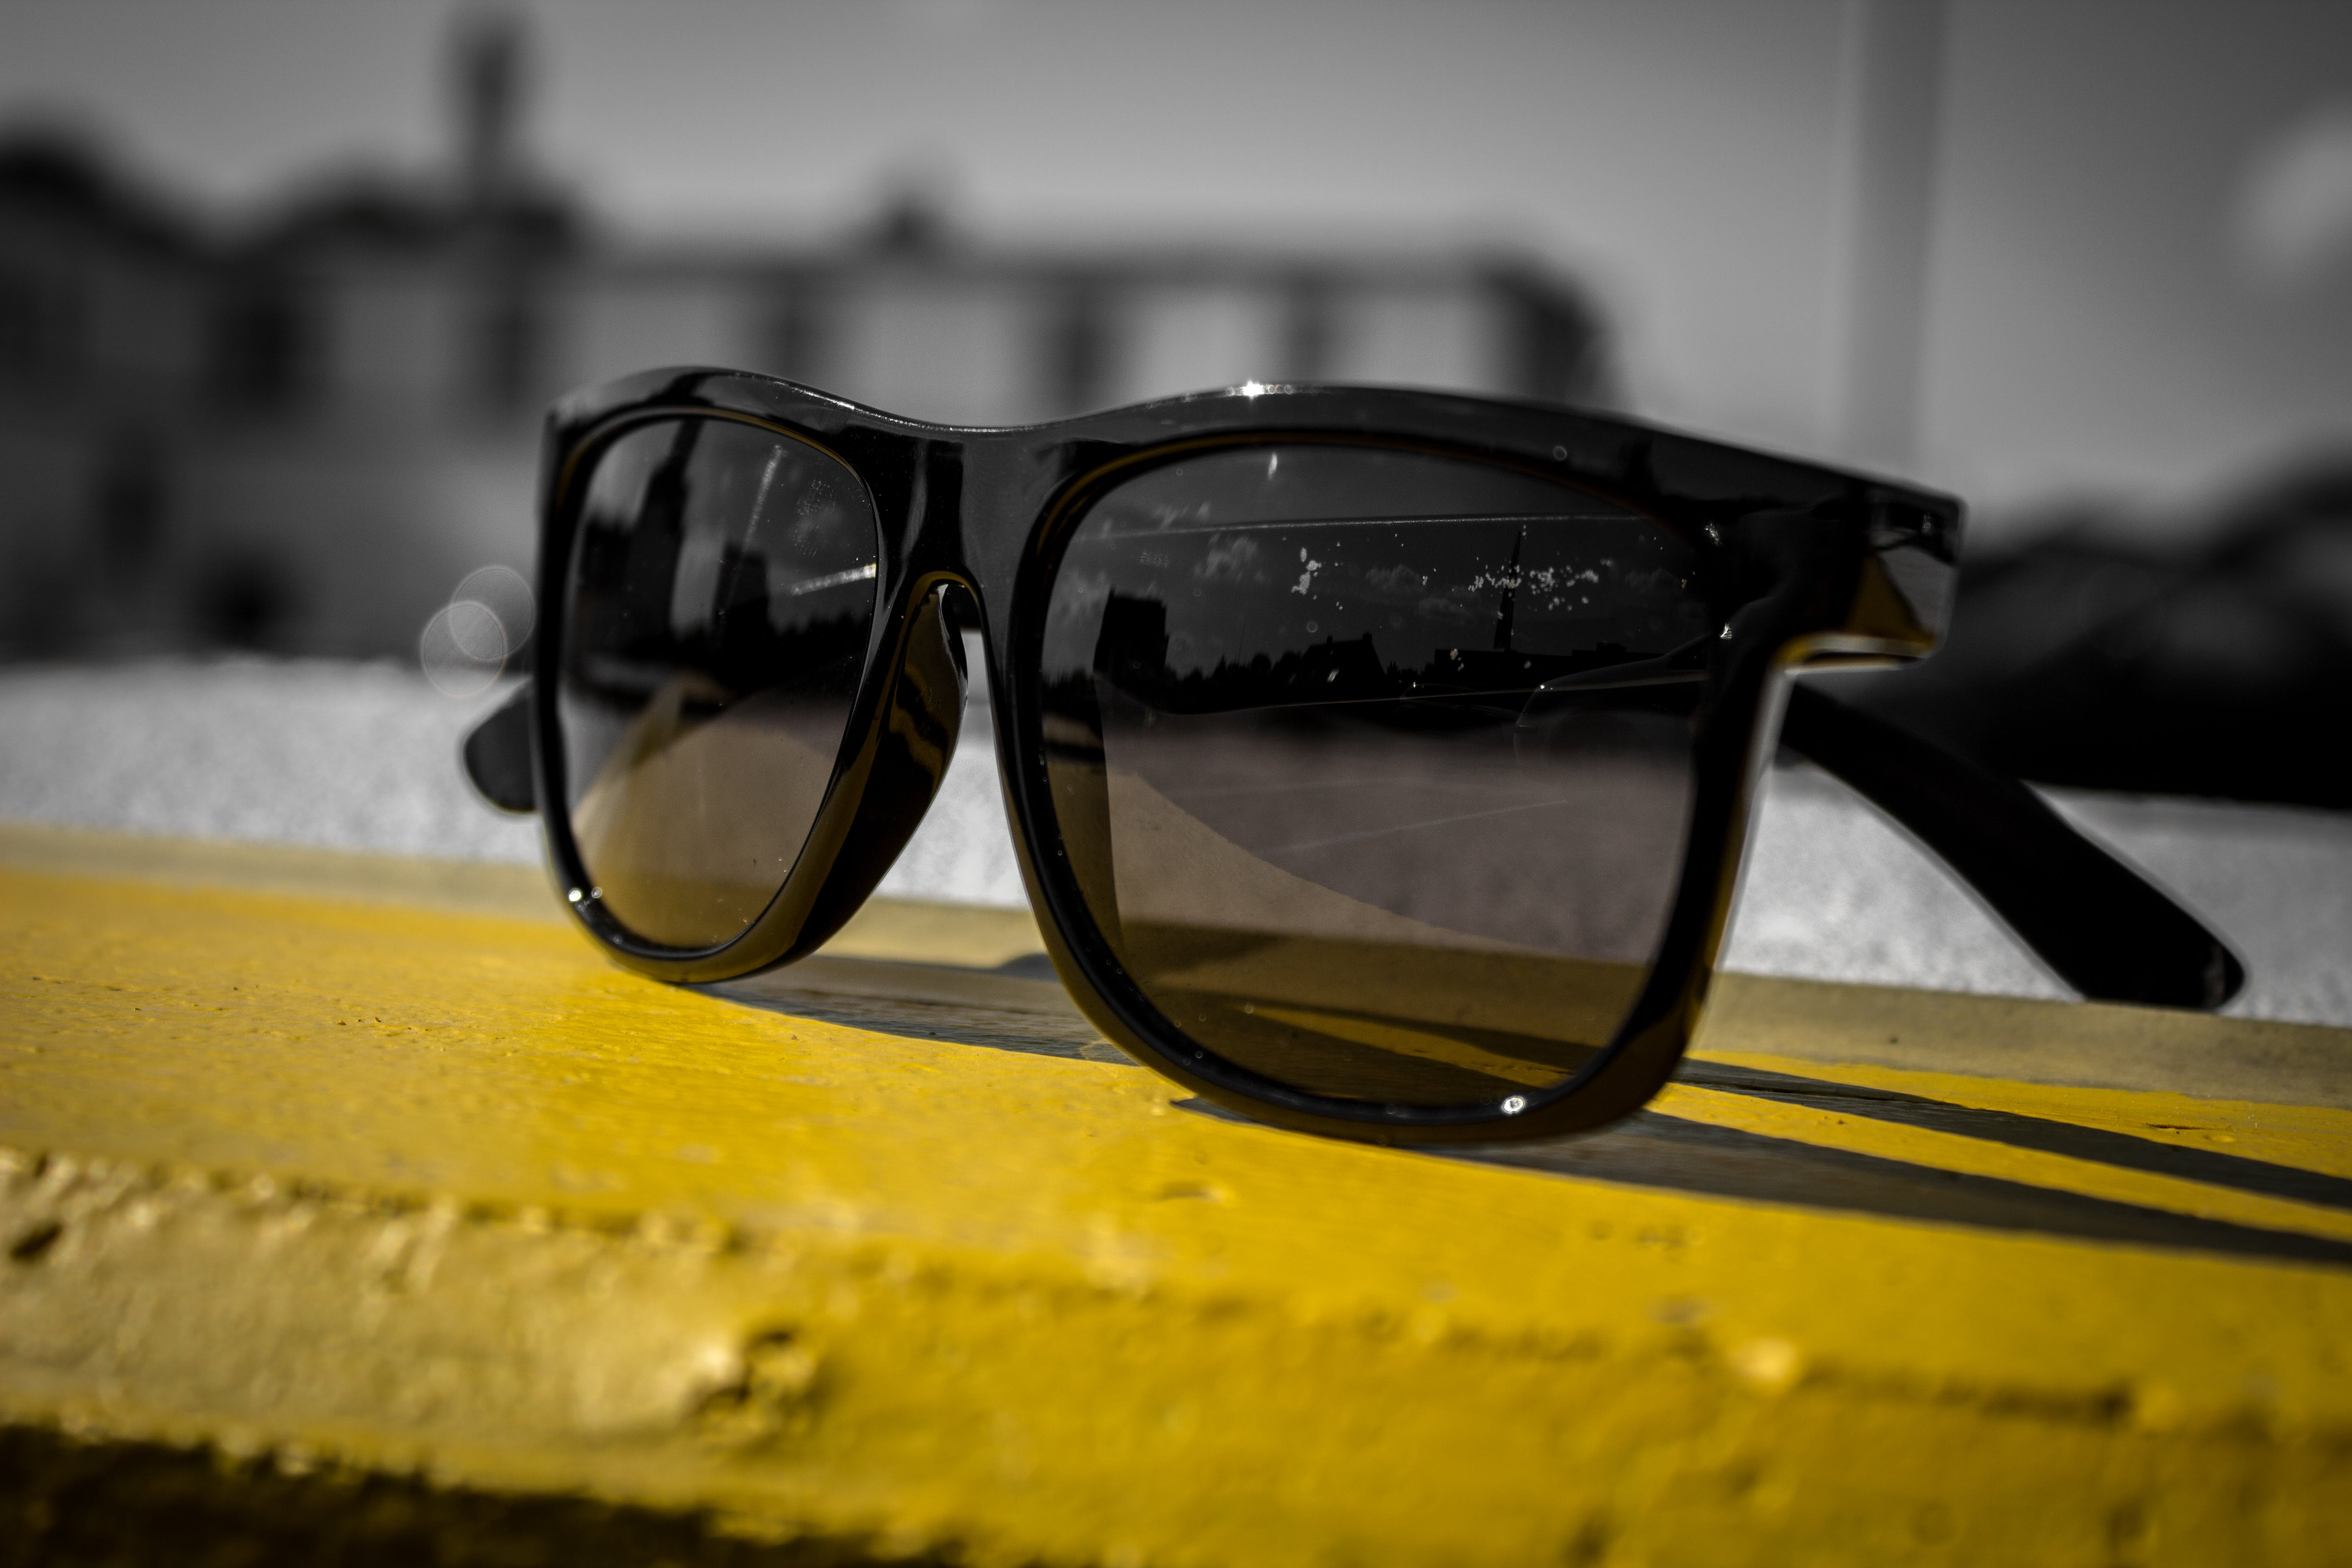 Black Sunglasses on Yellow Wooden Surface